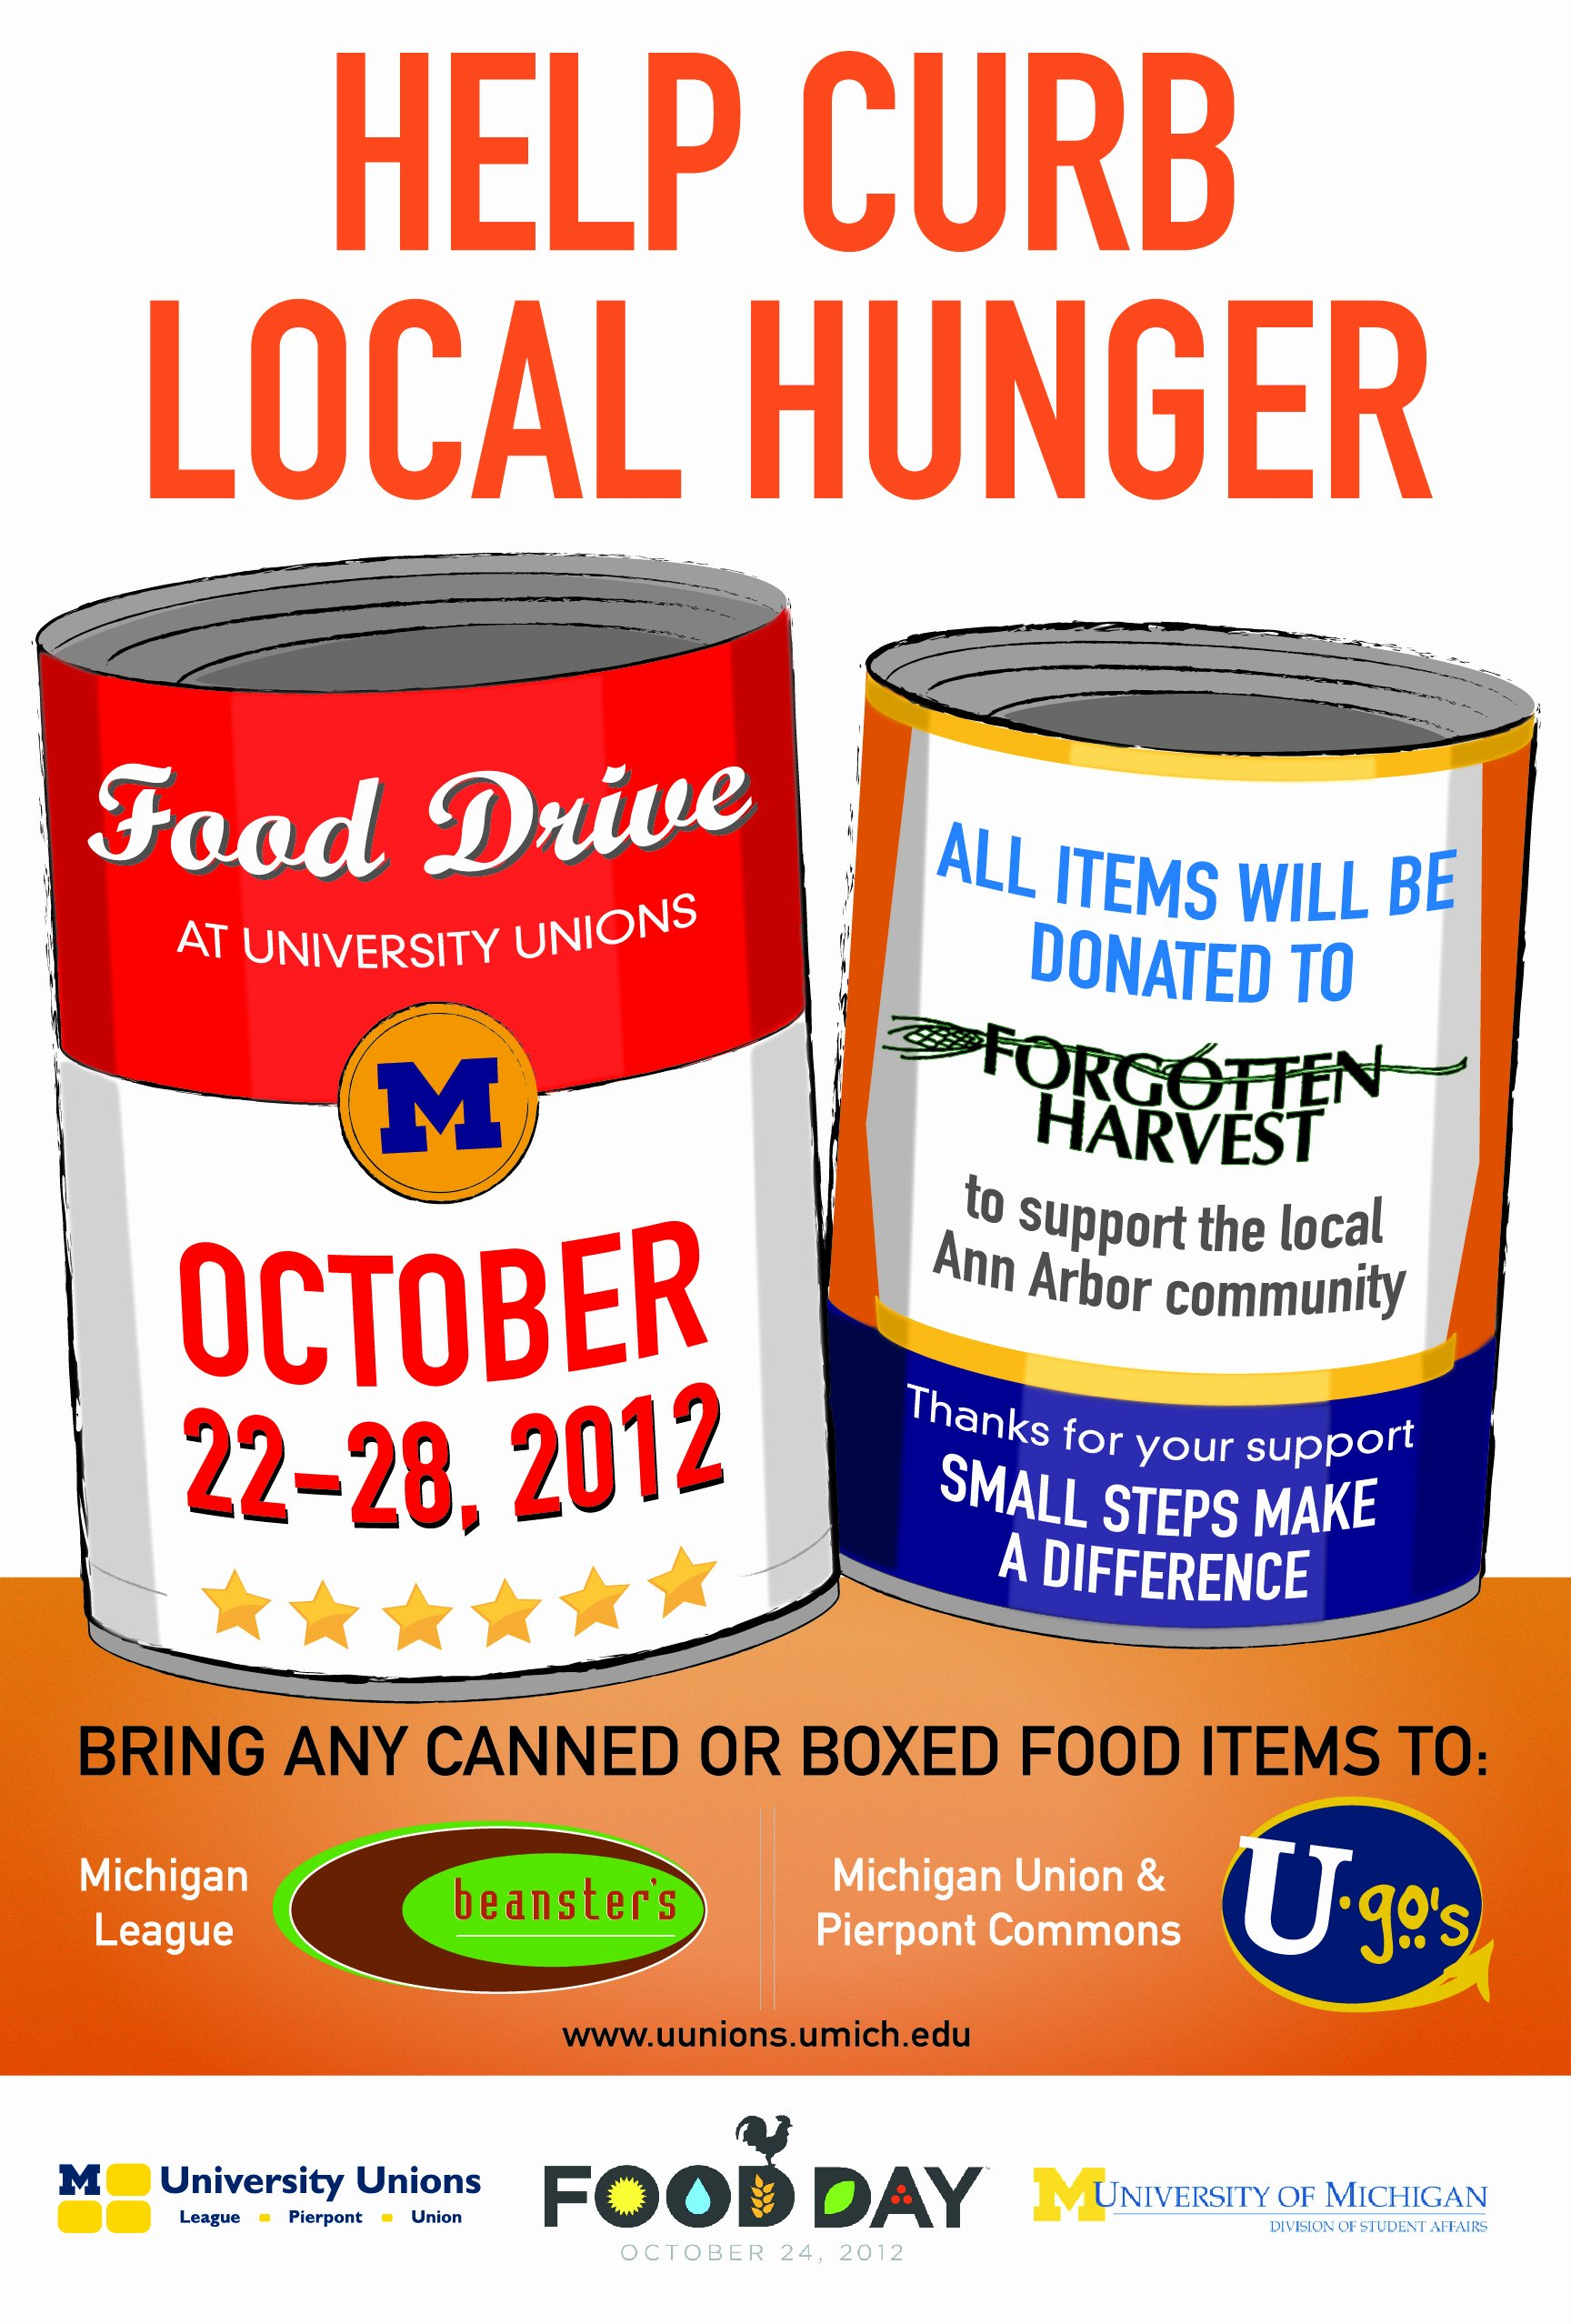 Canned Food Drive Flyer Awesome Celebrate Food Day Oct 22 26